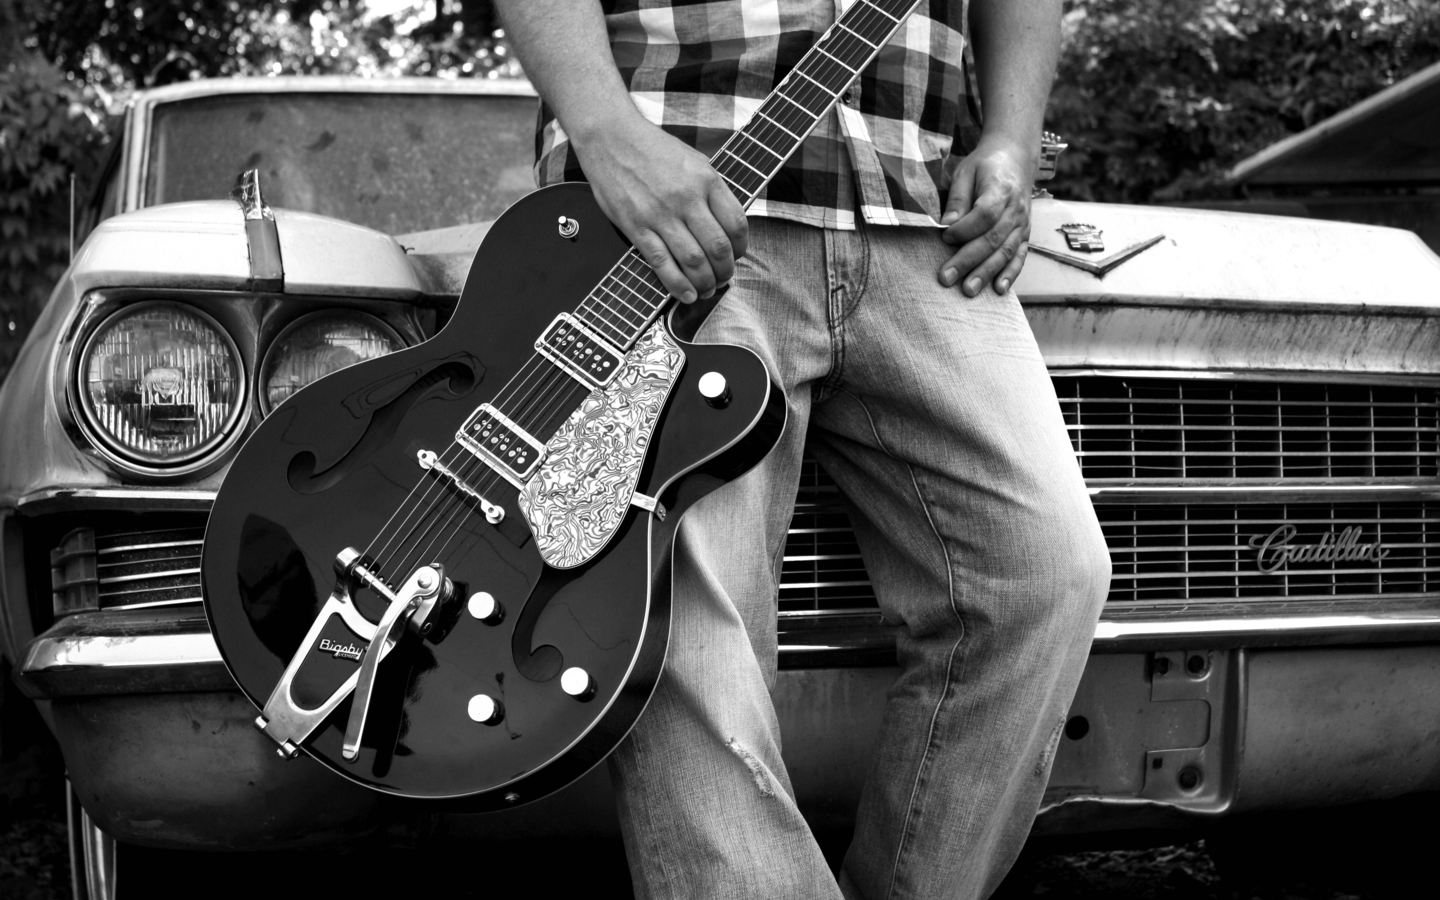 37 records and management image guy holding guitar leaning on caar